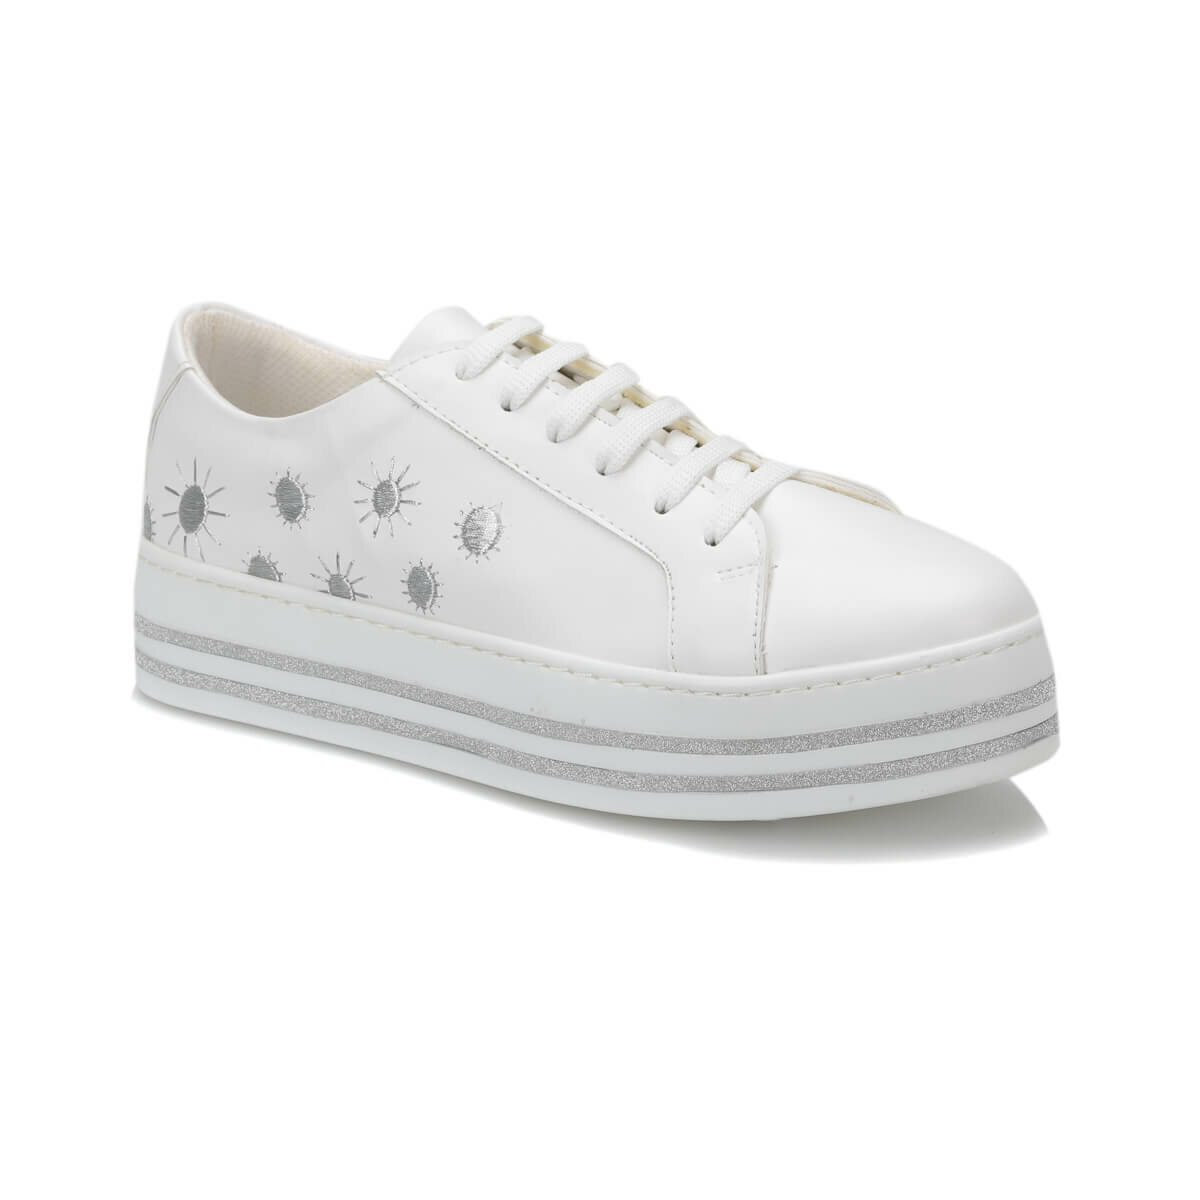 FLO 19S-151 White Women 'S Sneaker Shoes BUTIGO